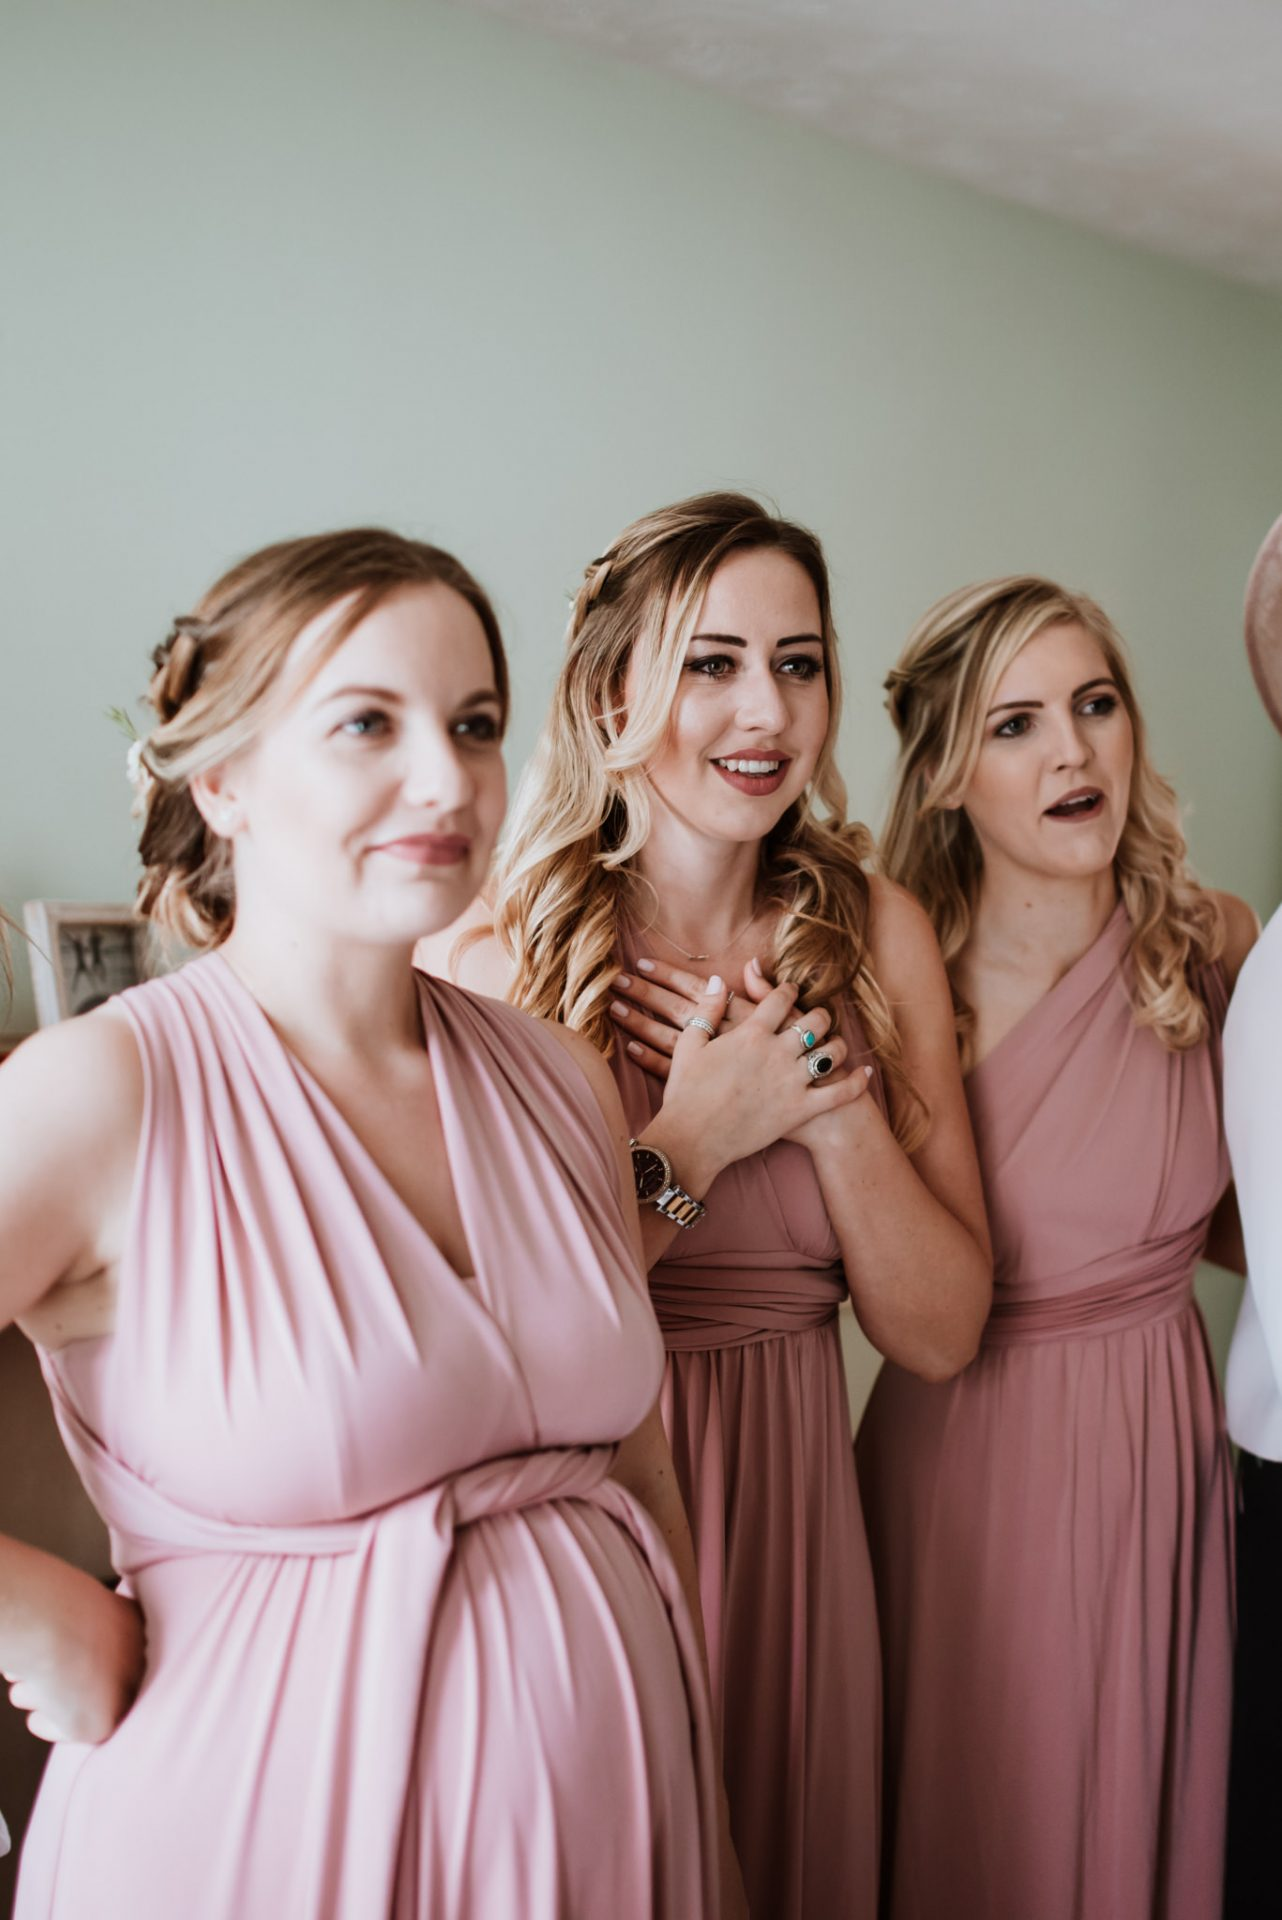 bridesmaids reaction to seeing the bride in her dress for the first time